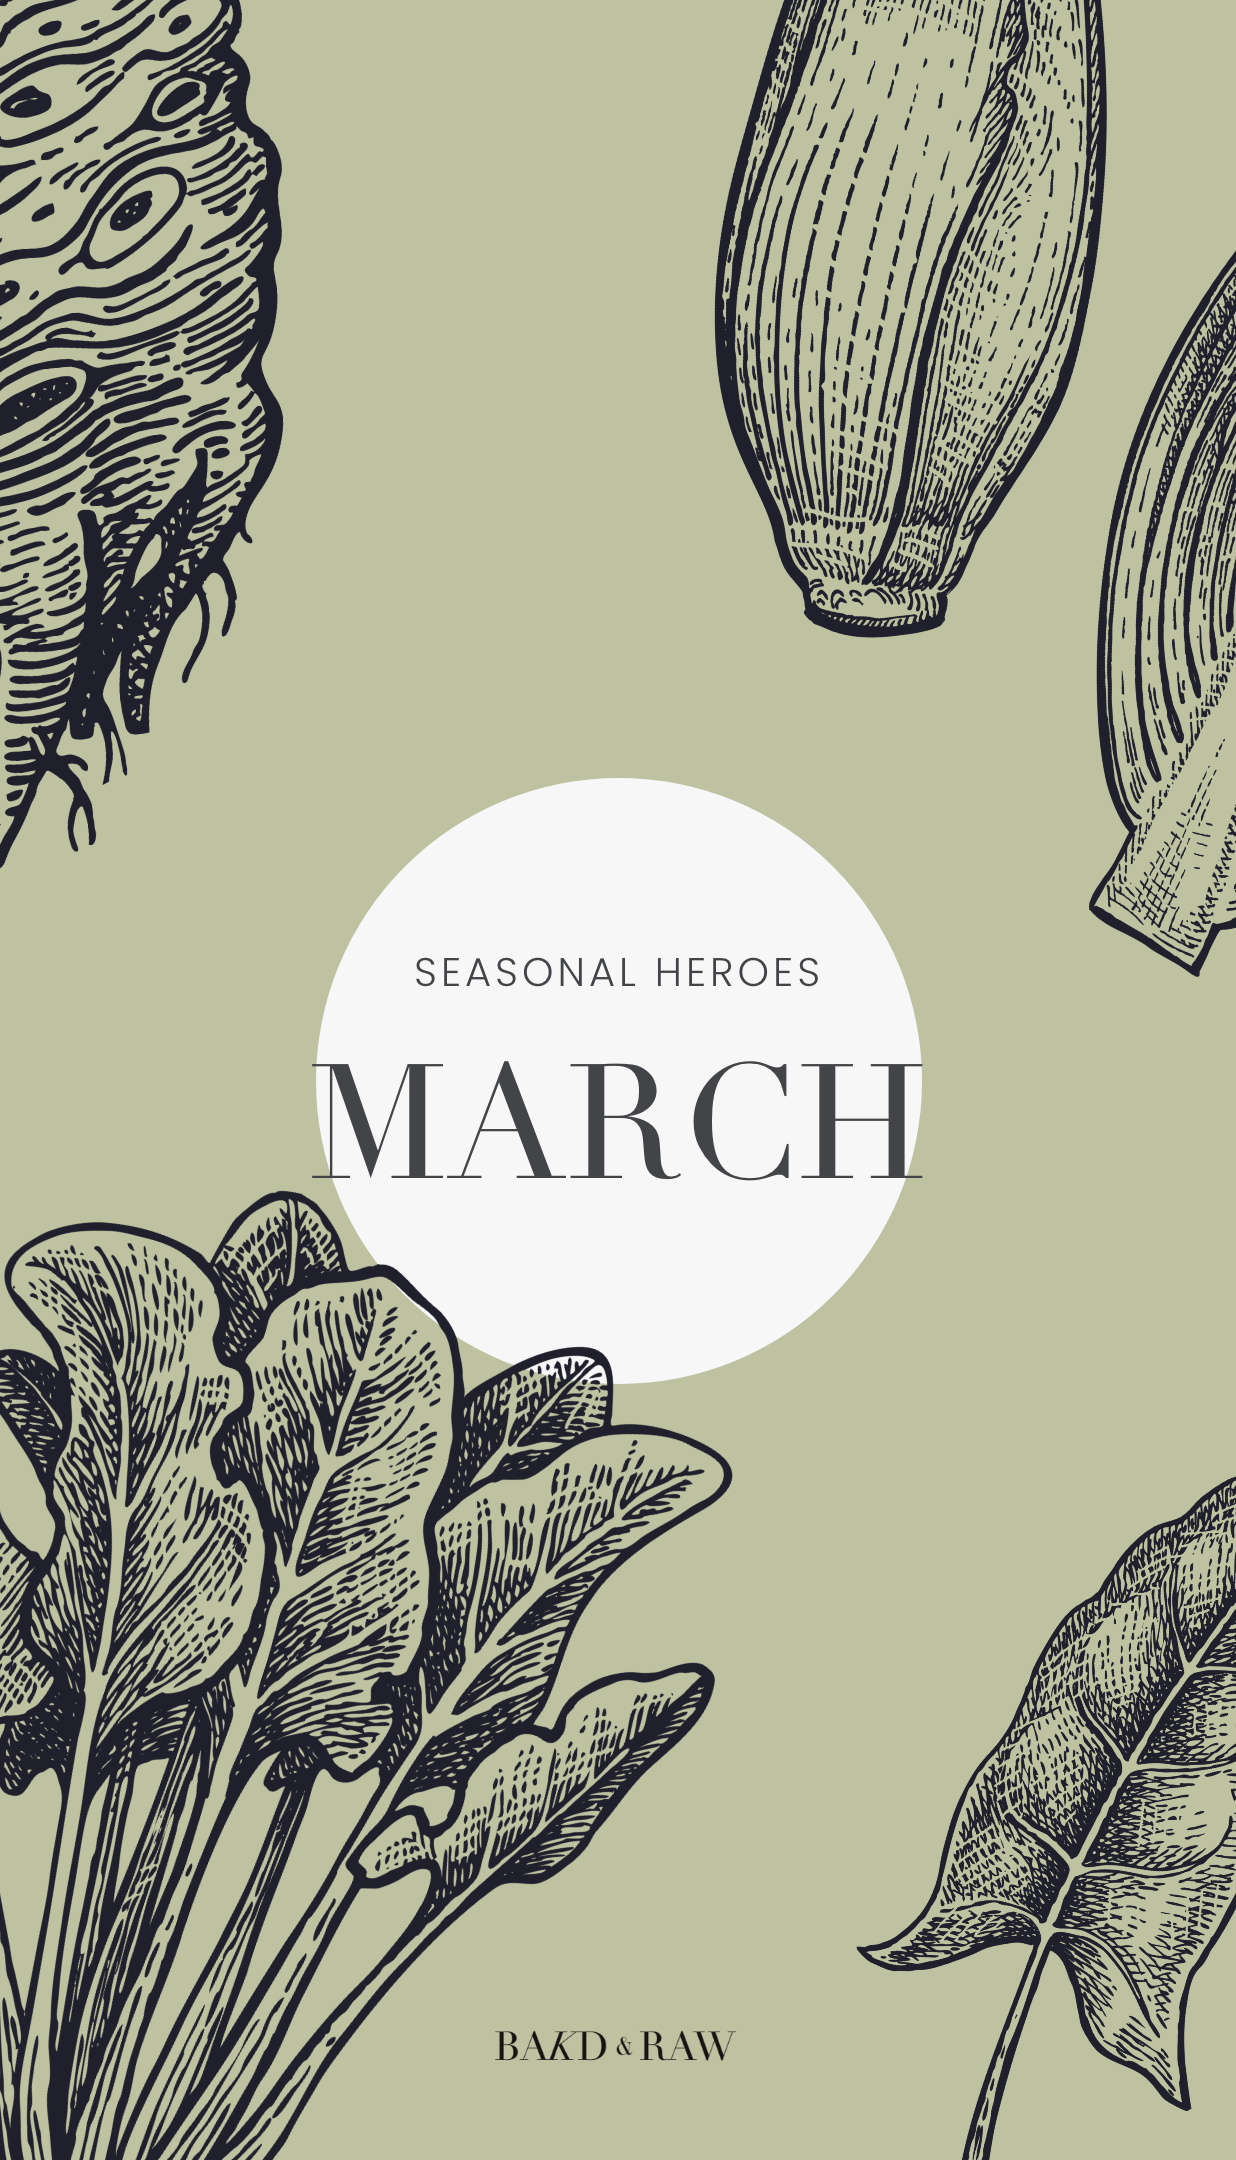 Seasonal Produce March Overview - Saisonkalender Karolin Baitinger